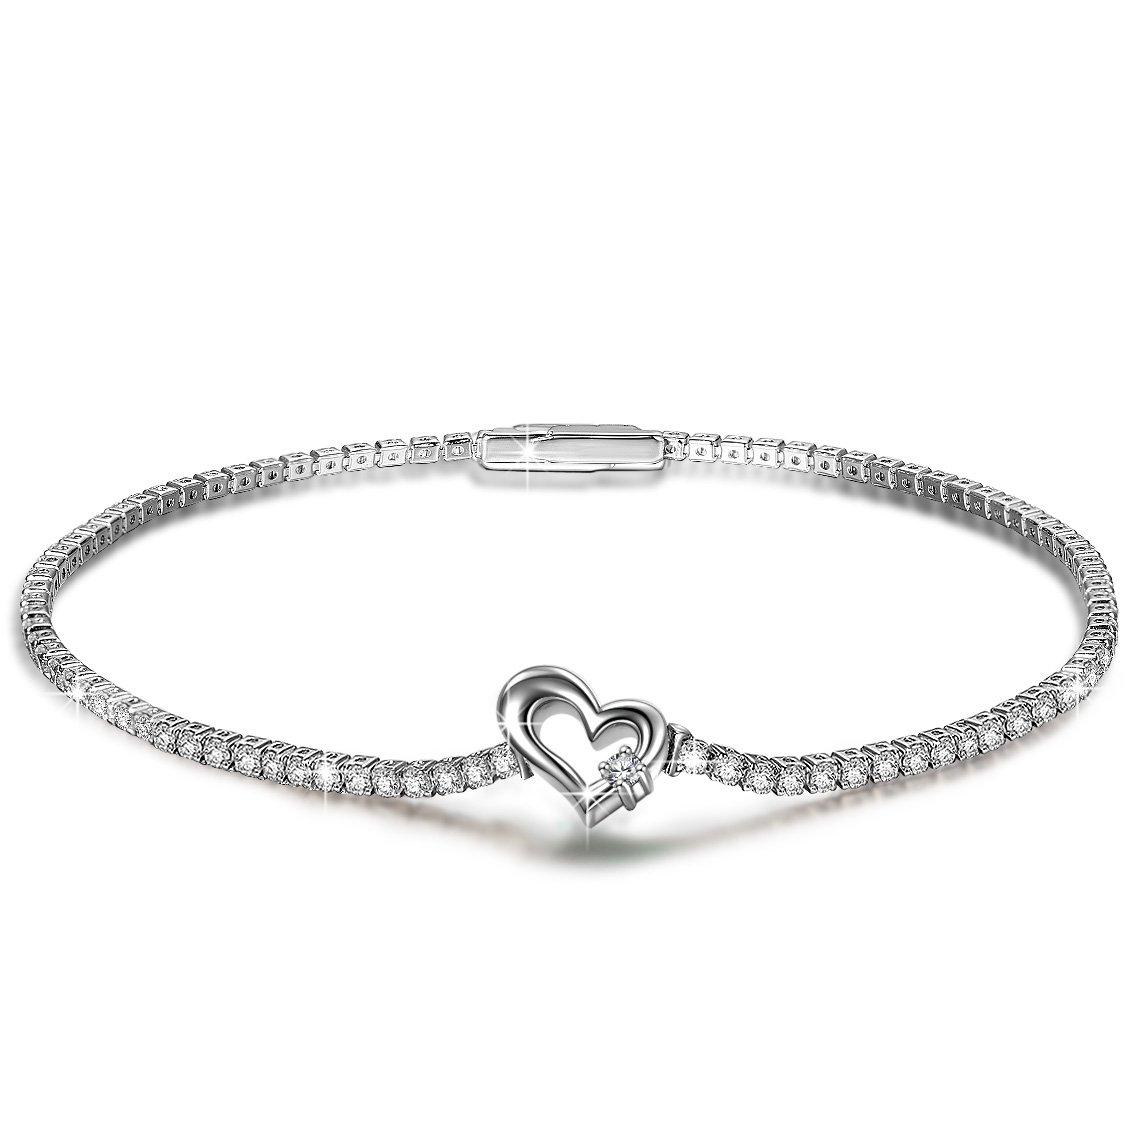 PN PRINCESS NINA Bracelet Gifts for Women for Her Sterling Silver CZ Crystal Bracelet Tennis Jewelry Birthday Gift for Wife